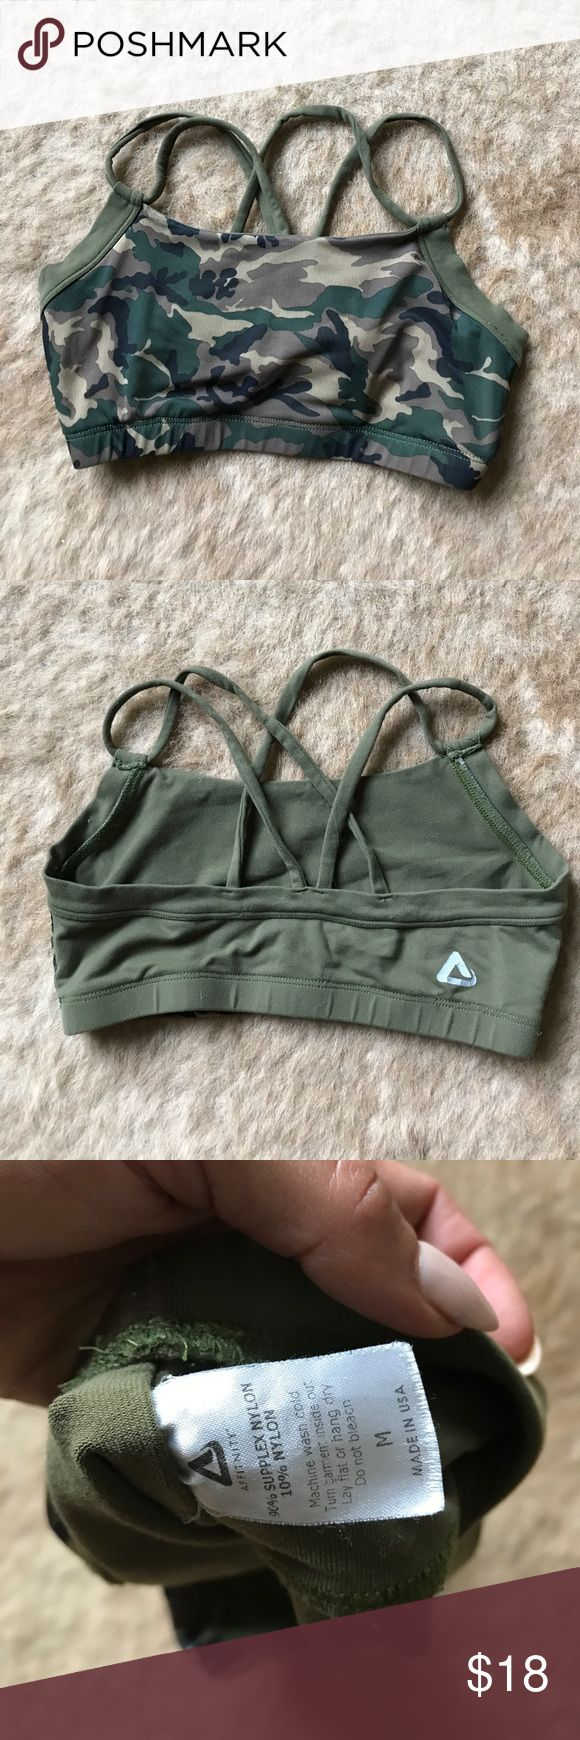 Affinity Camo Green Strappy sports bra size medium Affinity bra clothing is perfect fitness photo shoot quality clothing that can also stand up to functional training. This camo bra has been for for some shoots and minimal training. Gently used but no signs of pilling on fabric and color is still very vibrant for photos. Affinity Tops Tank Tops